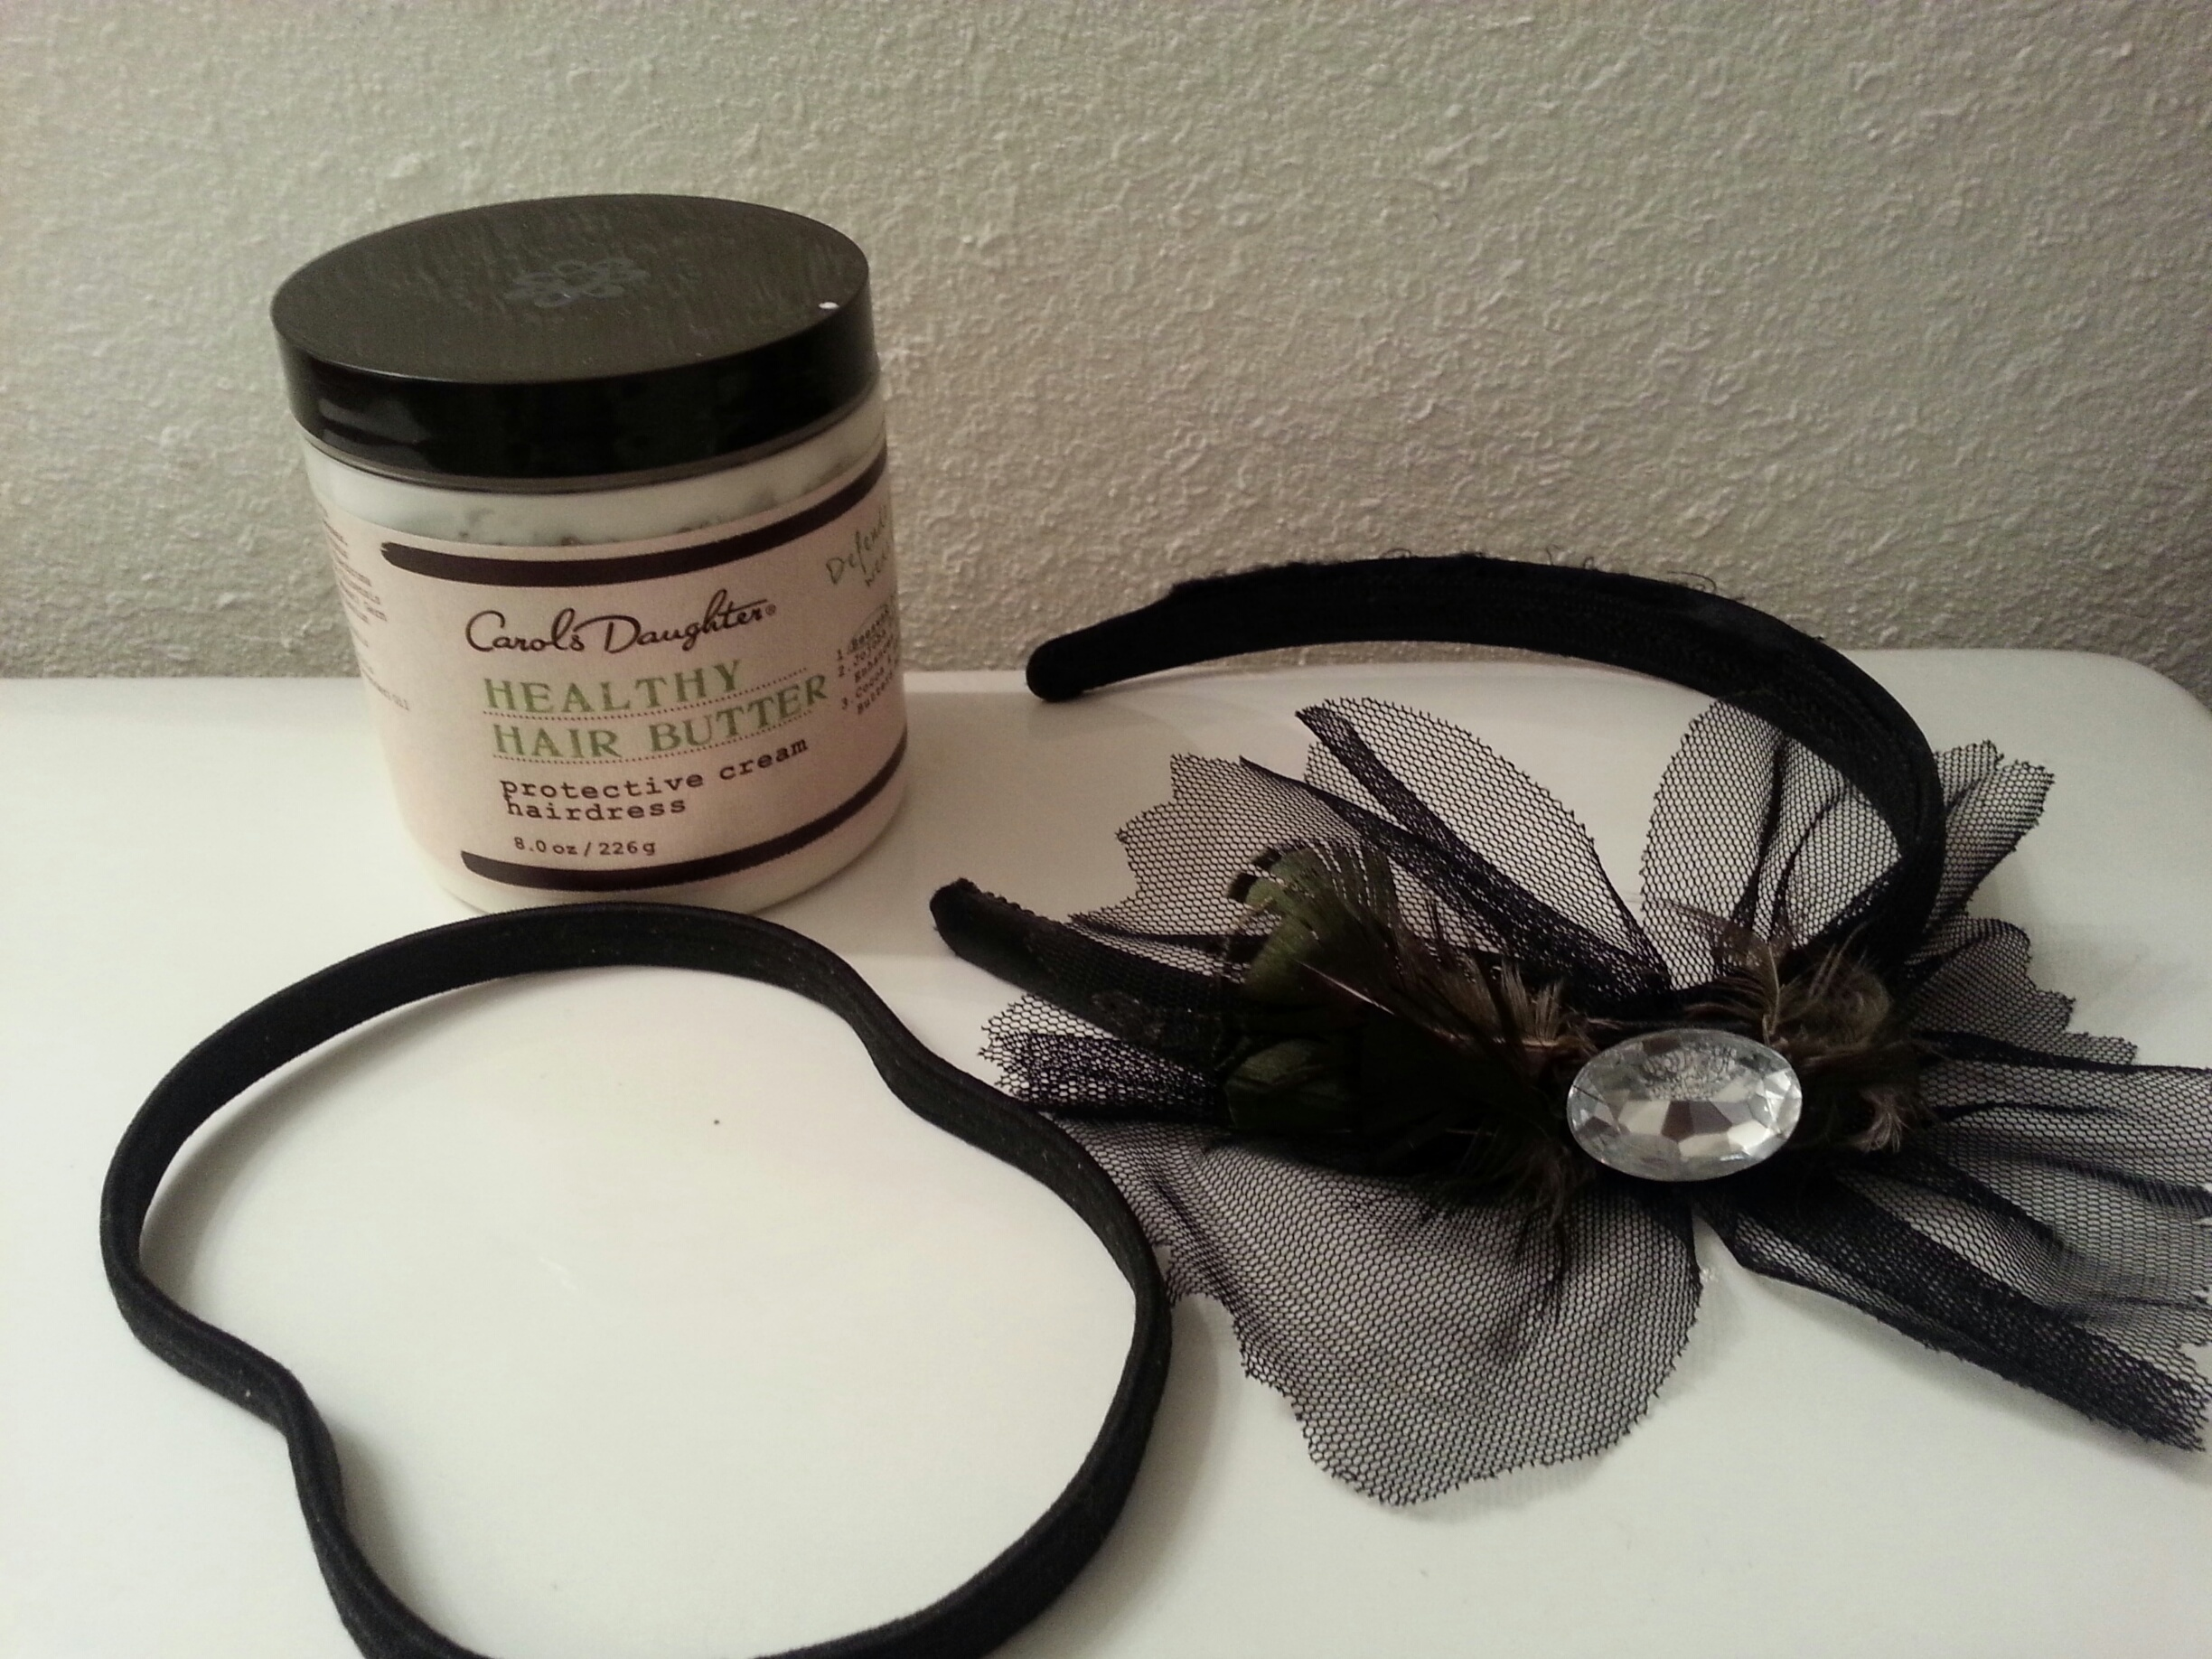 """Products Used: Carols Daughter """"Healthy Hair Butter"""", Elastic hair band and a cute head band (optional)"""